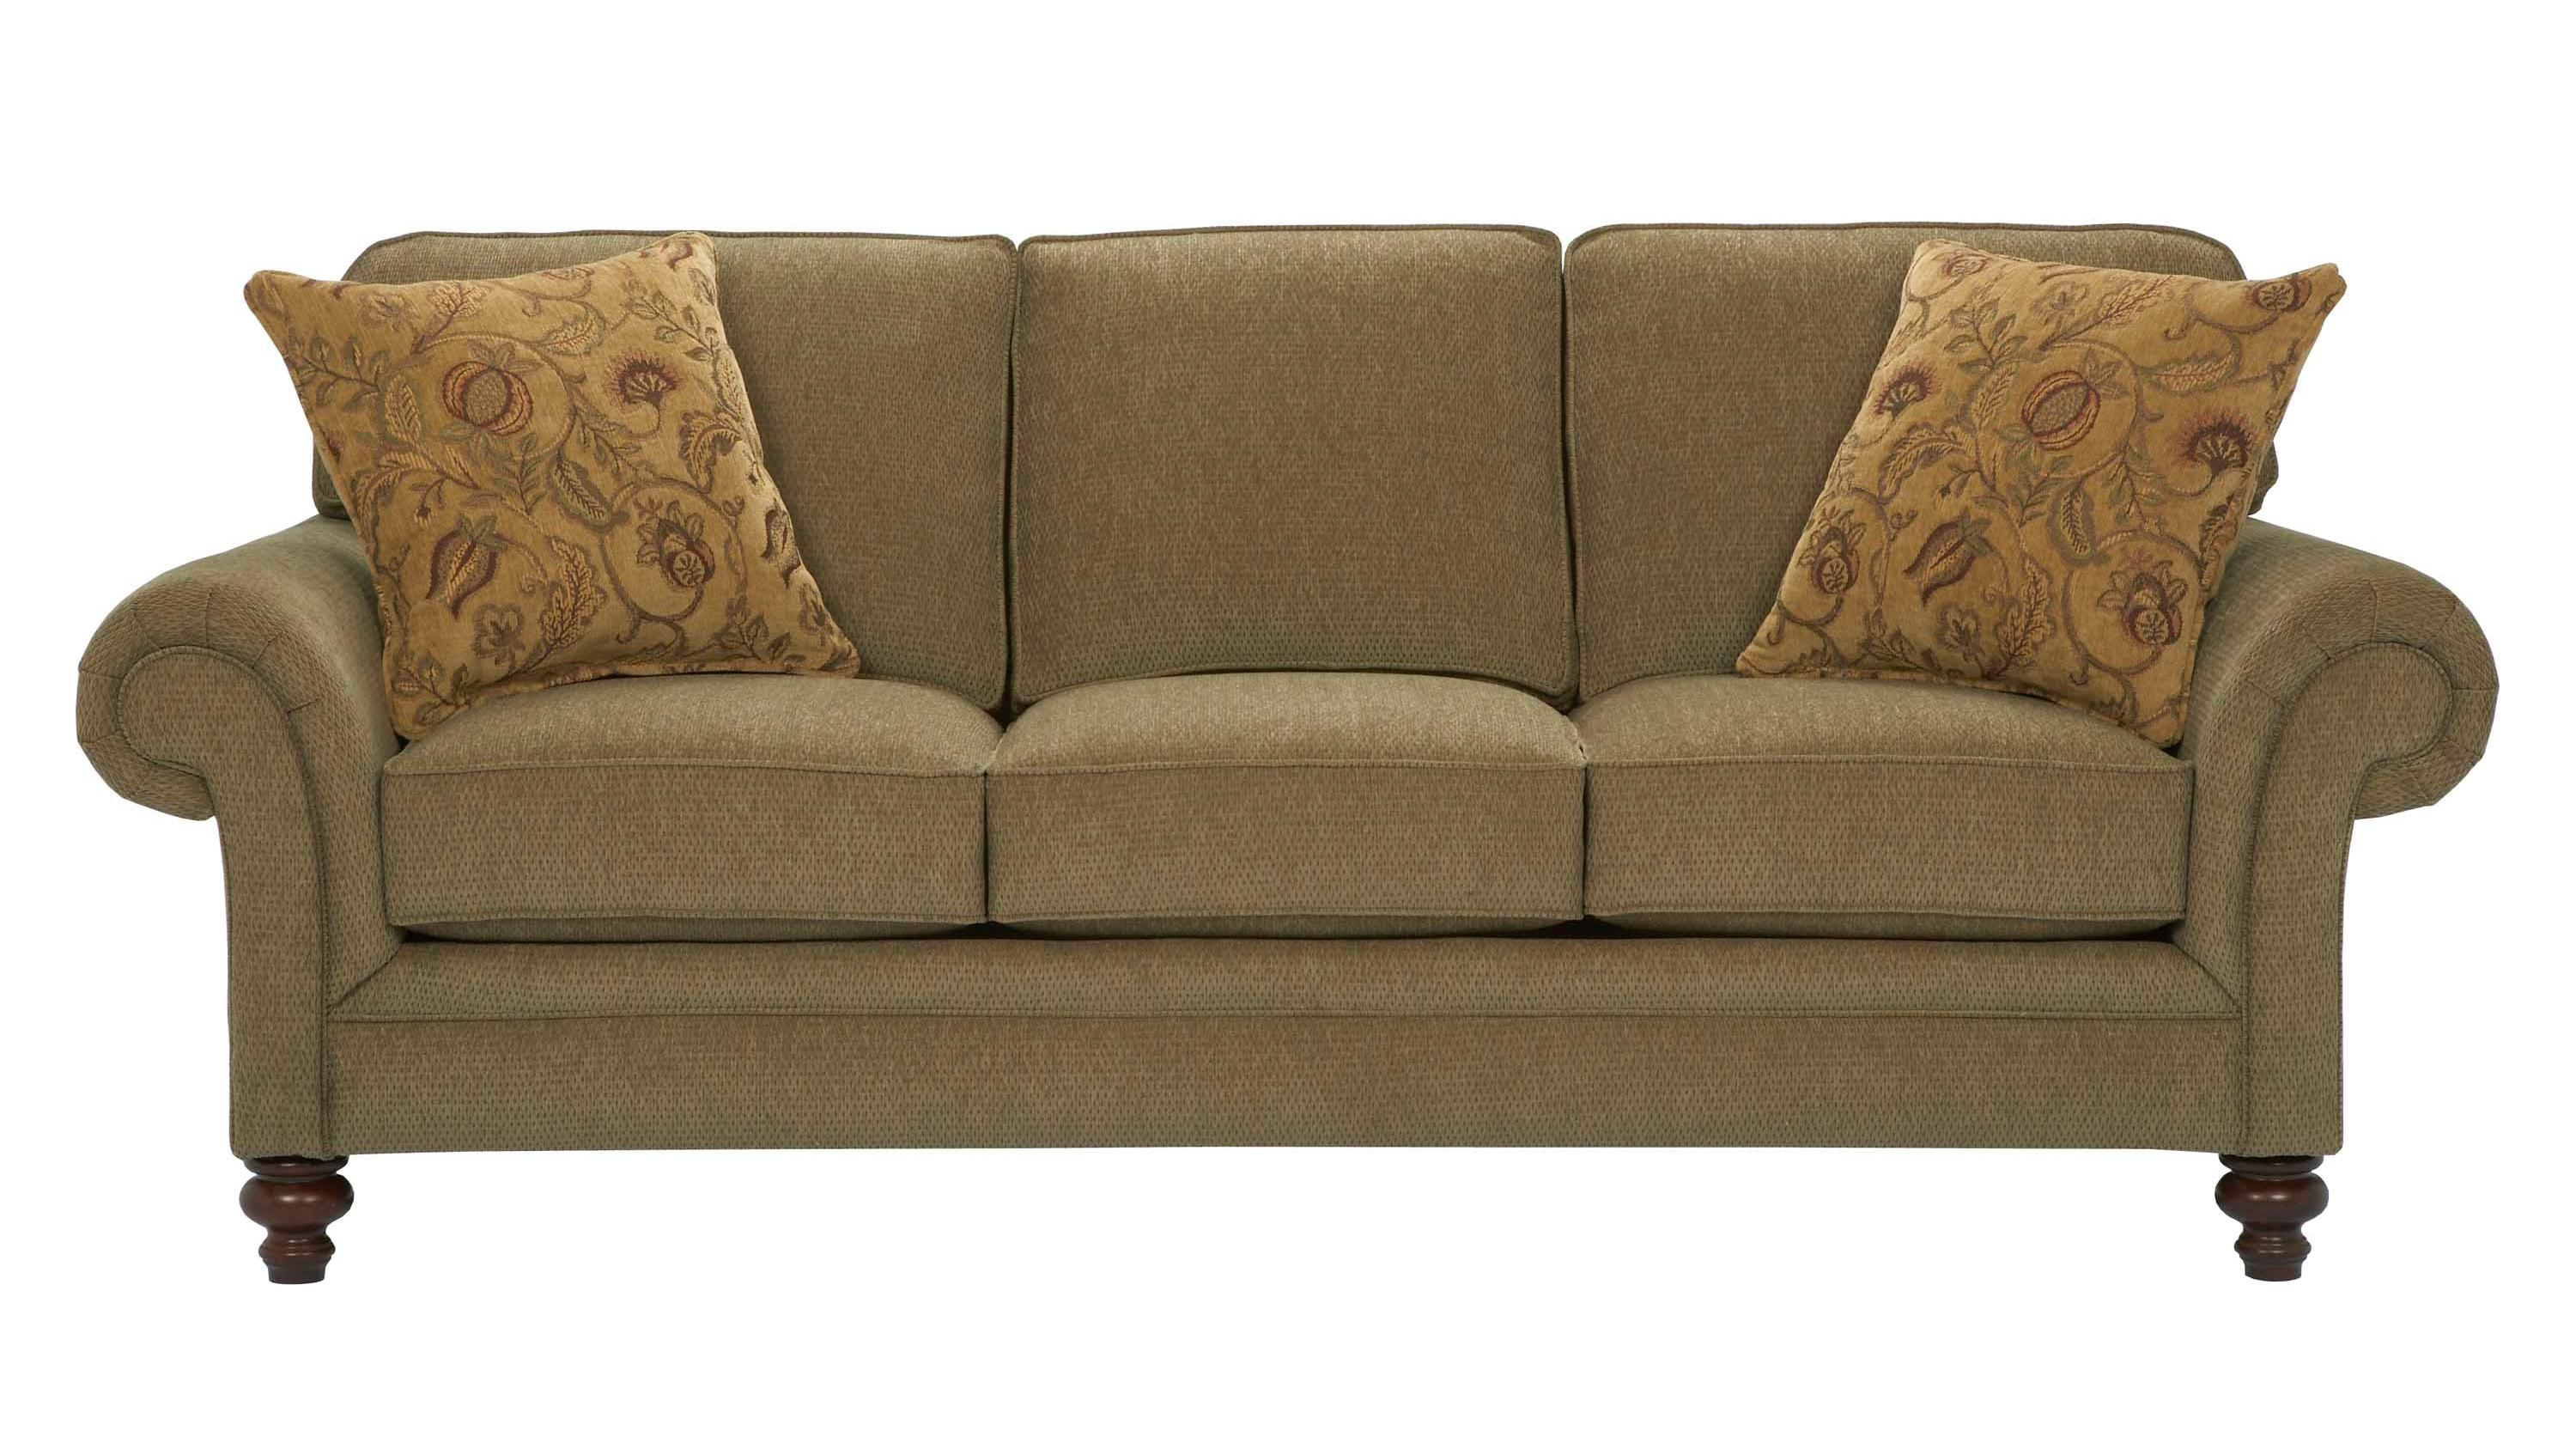 50 Broyhill Sectional Sofa, Broyhill Furniture Audrey Sofa 37623 With Broyhill Perspectives Sofas (Image 1 of 20)